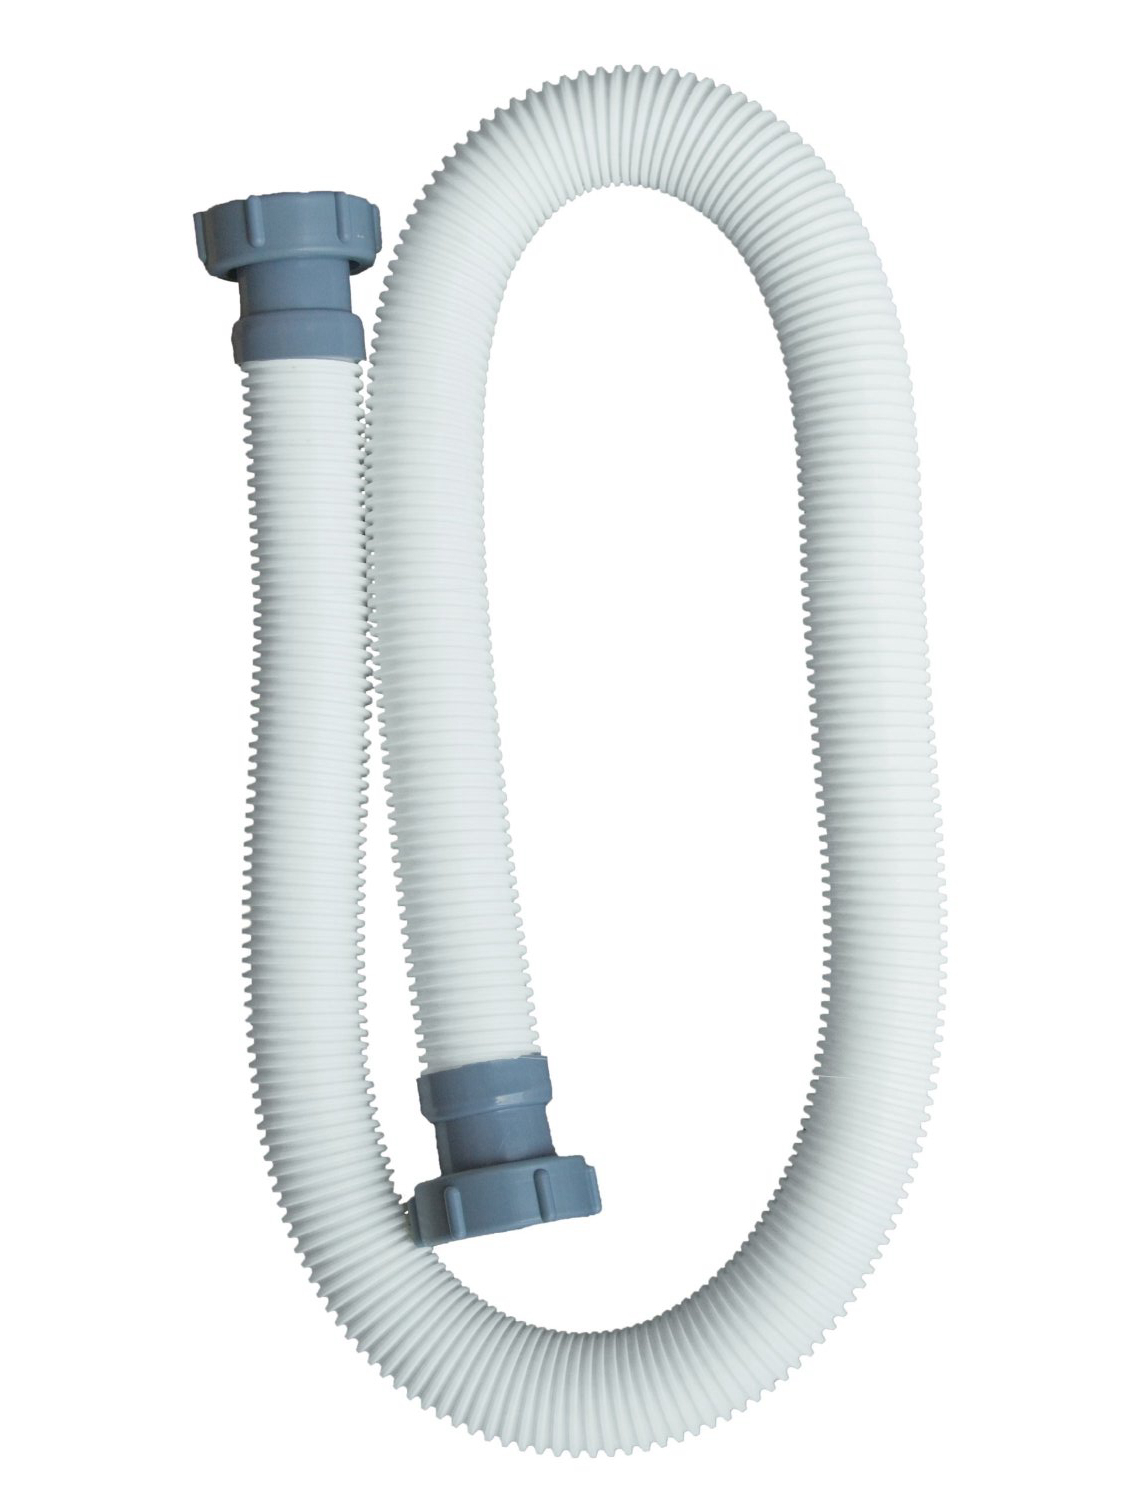 Spare Corrugated Hose For Swimming Pool, 38mm, Intex, Item No. 29060